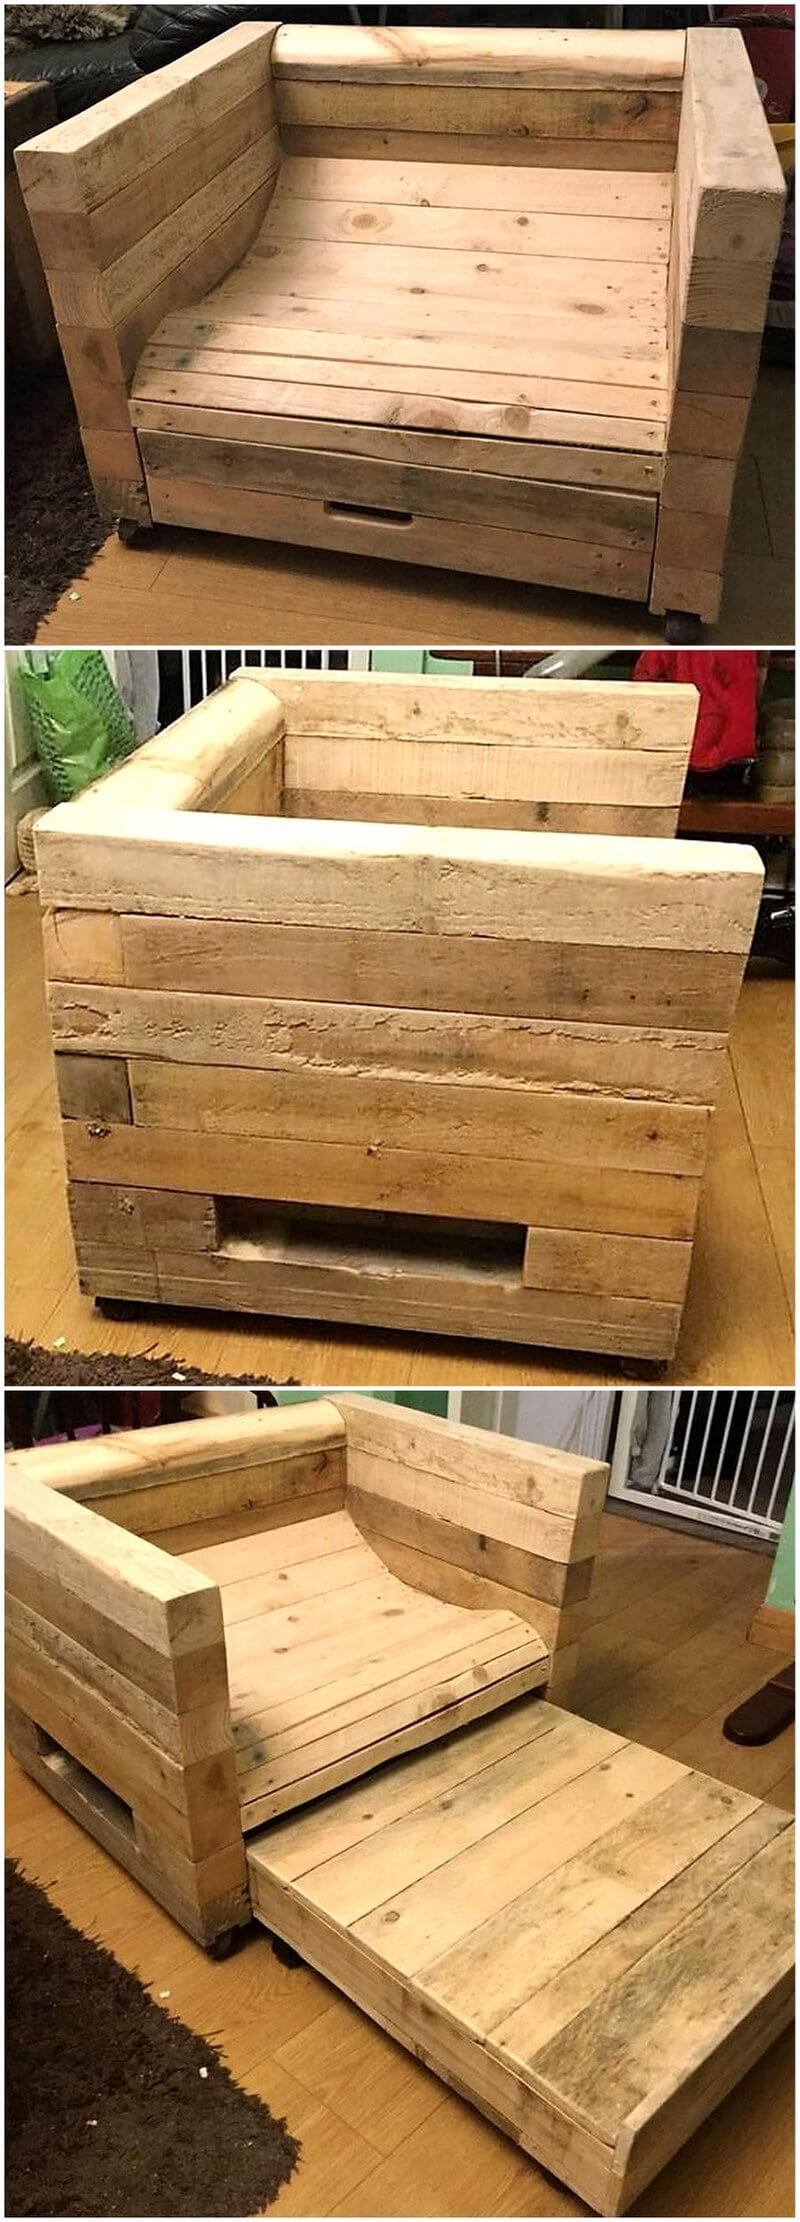 pallet hygge chair with slide out draw